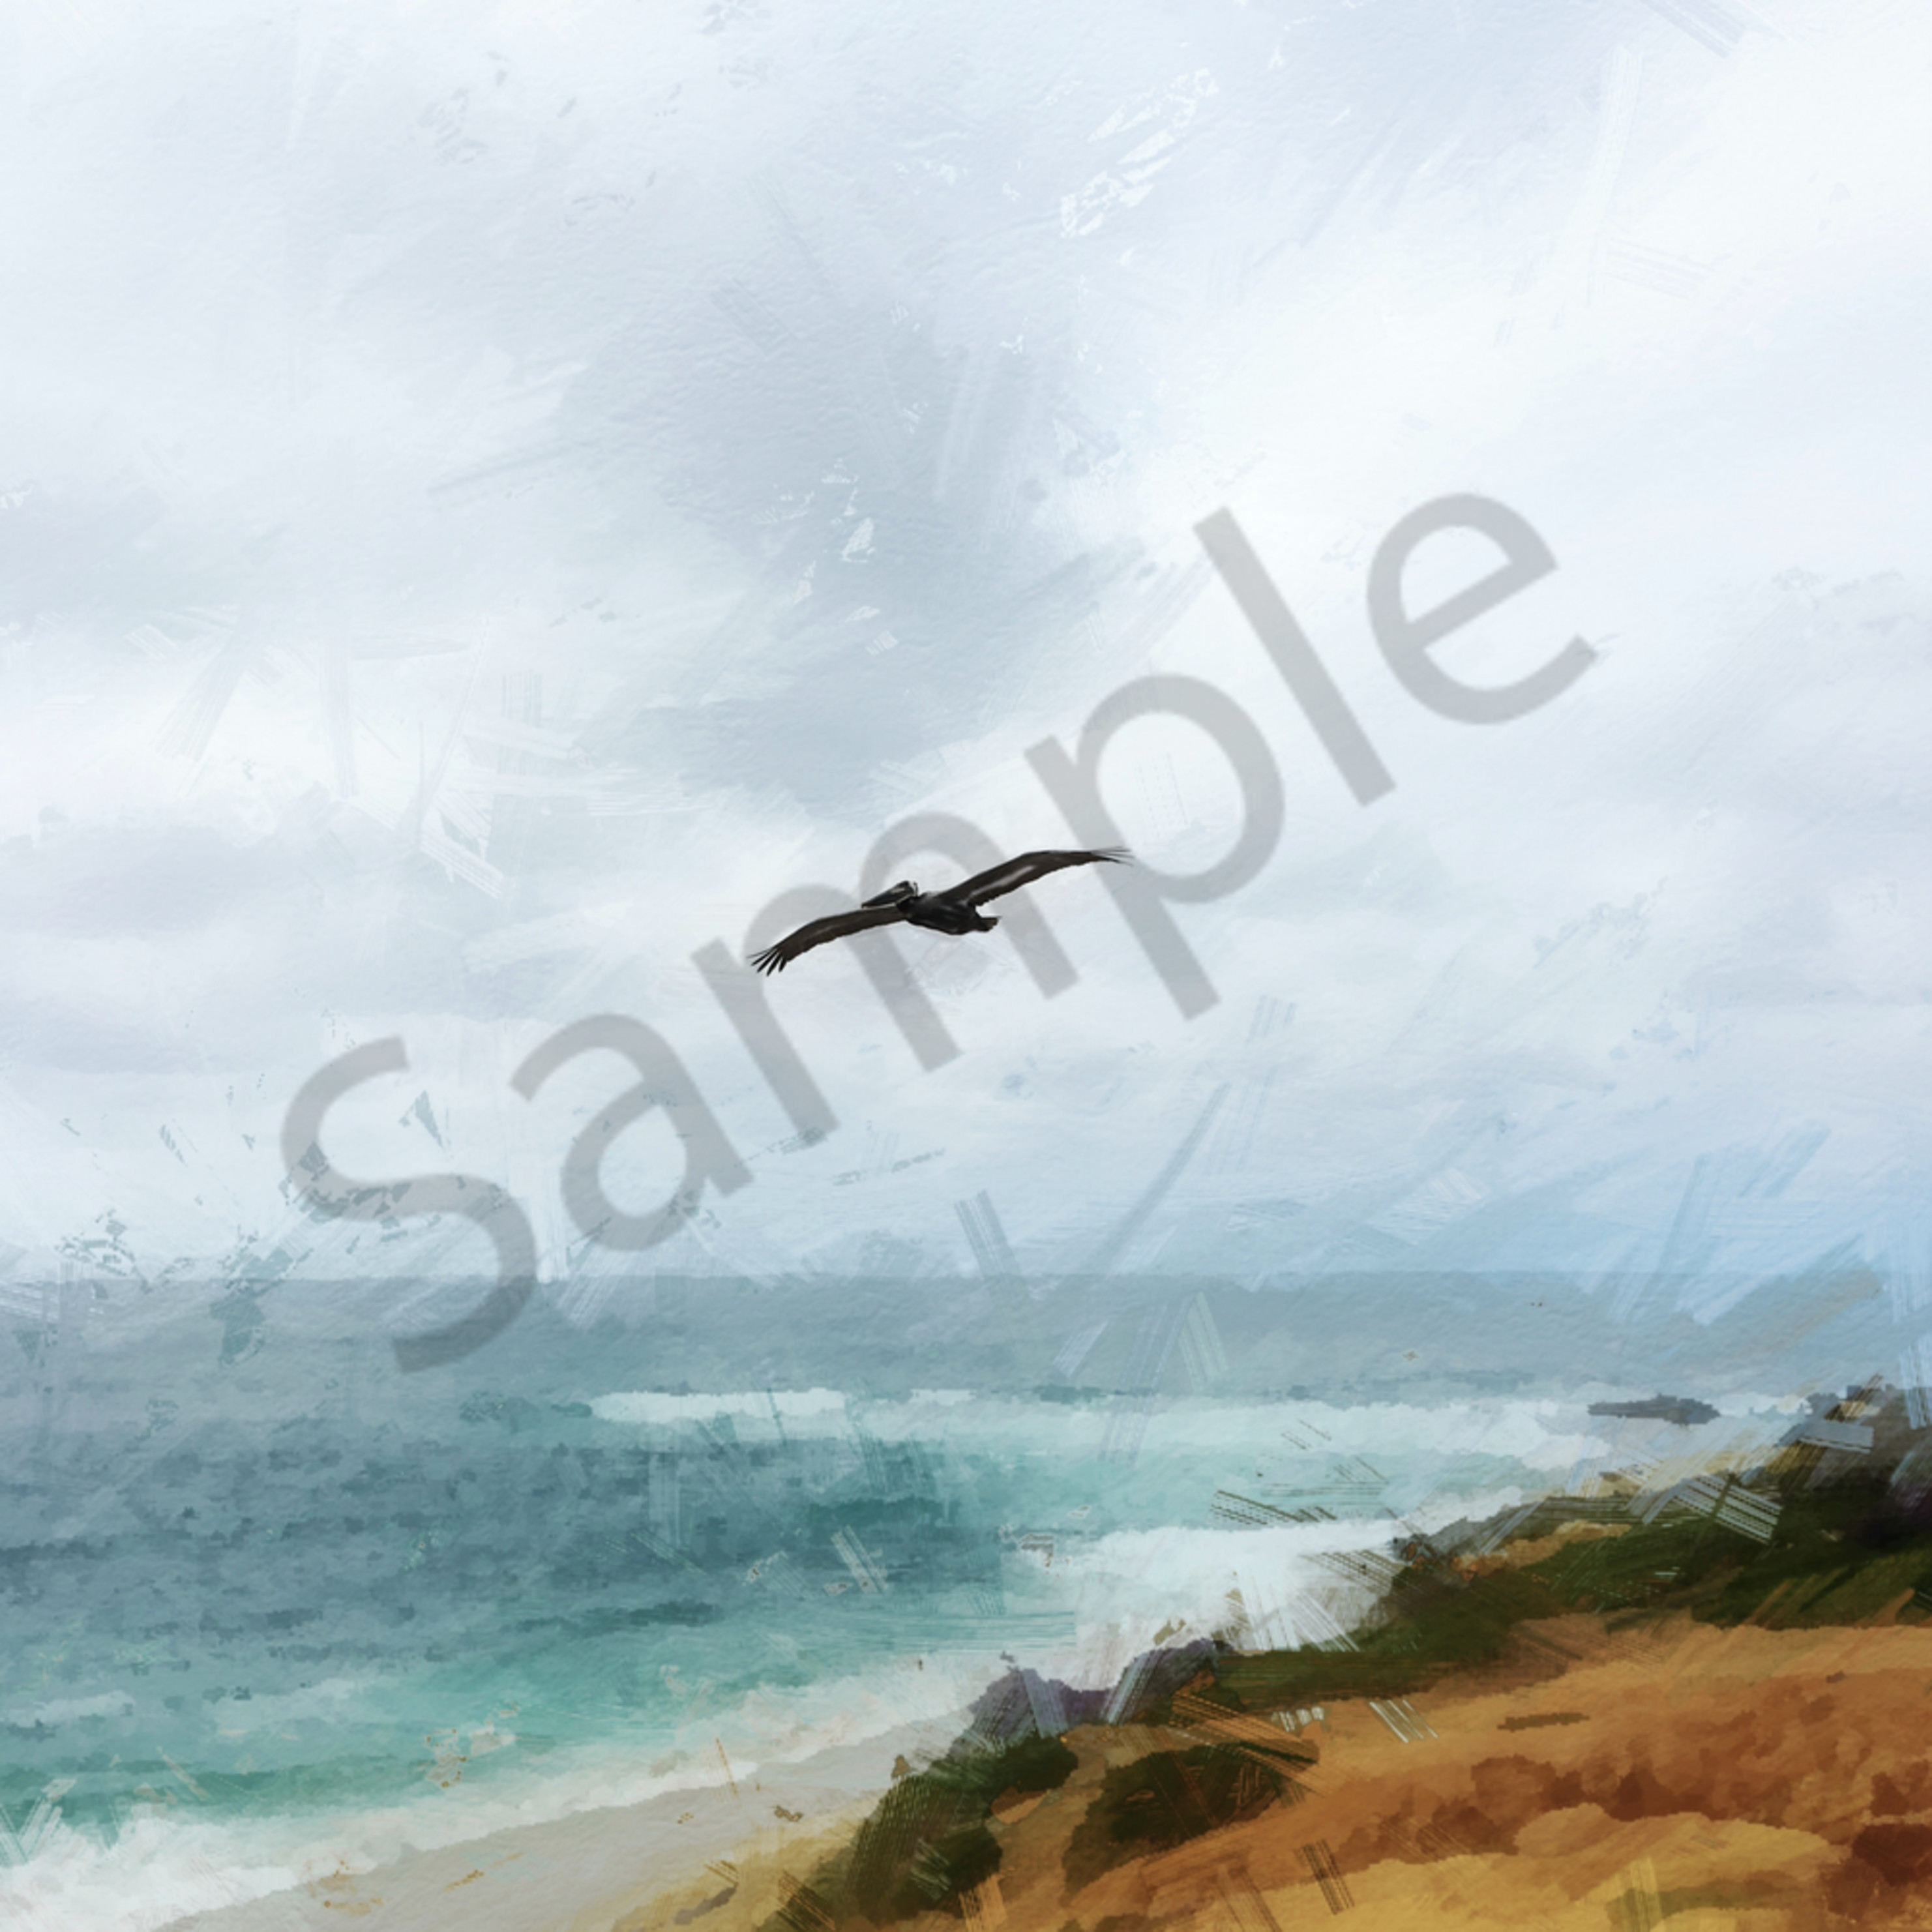 Img 1697 gray may with pelican in la jolla mothers day 2019   abstract digital painting enlight151 desaturate art4theglryofgod mbufss